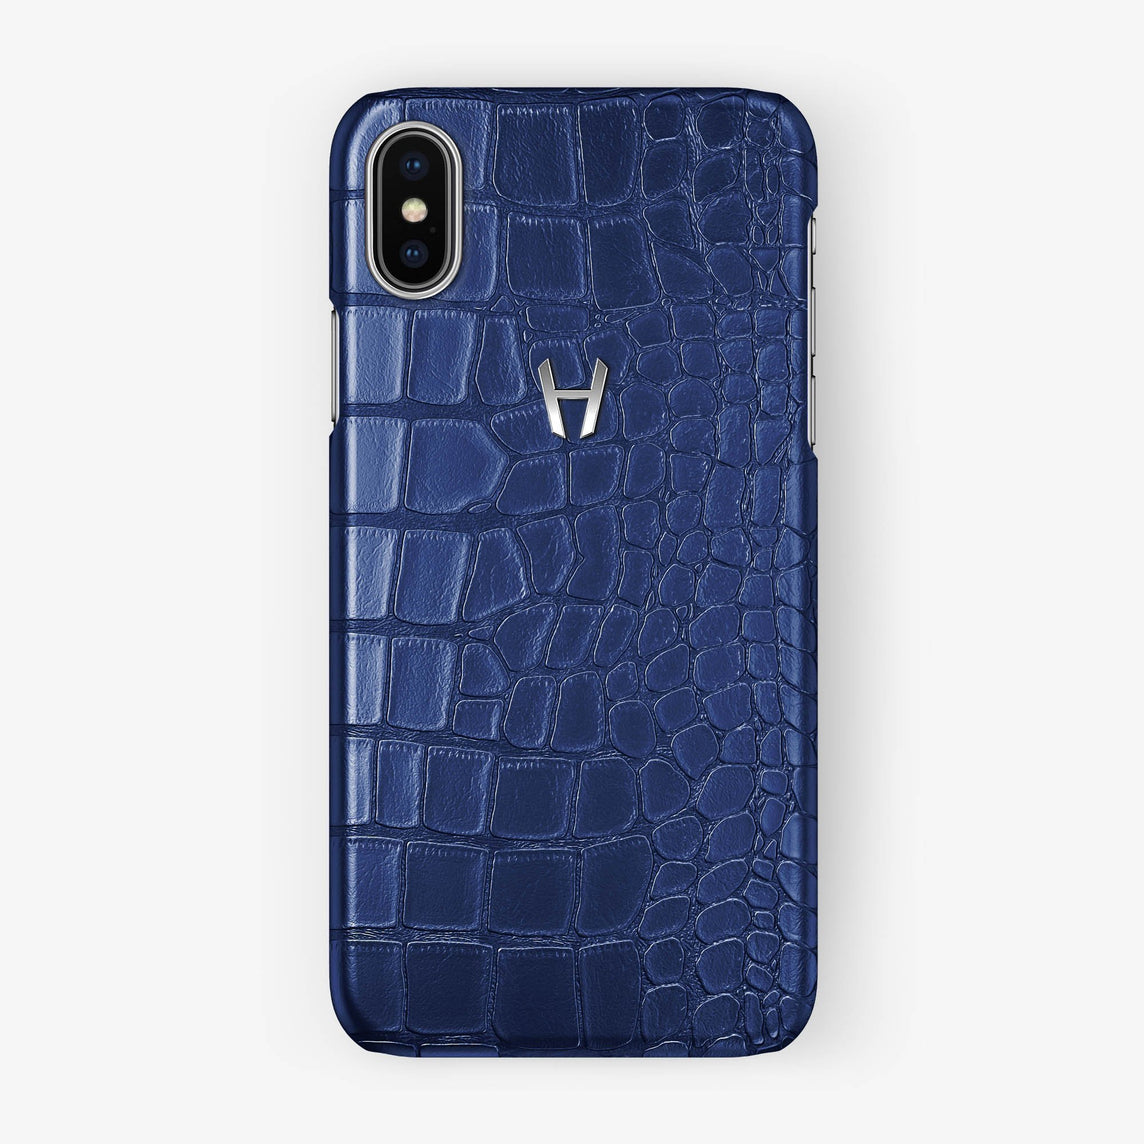 Alligator [iPhone Case] [model:iphone-xsmax-case] [colour:navy-blue] [finishing:stainless-steel] - Hadoro